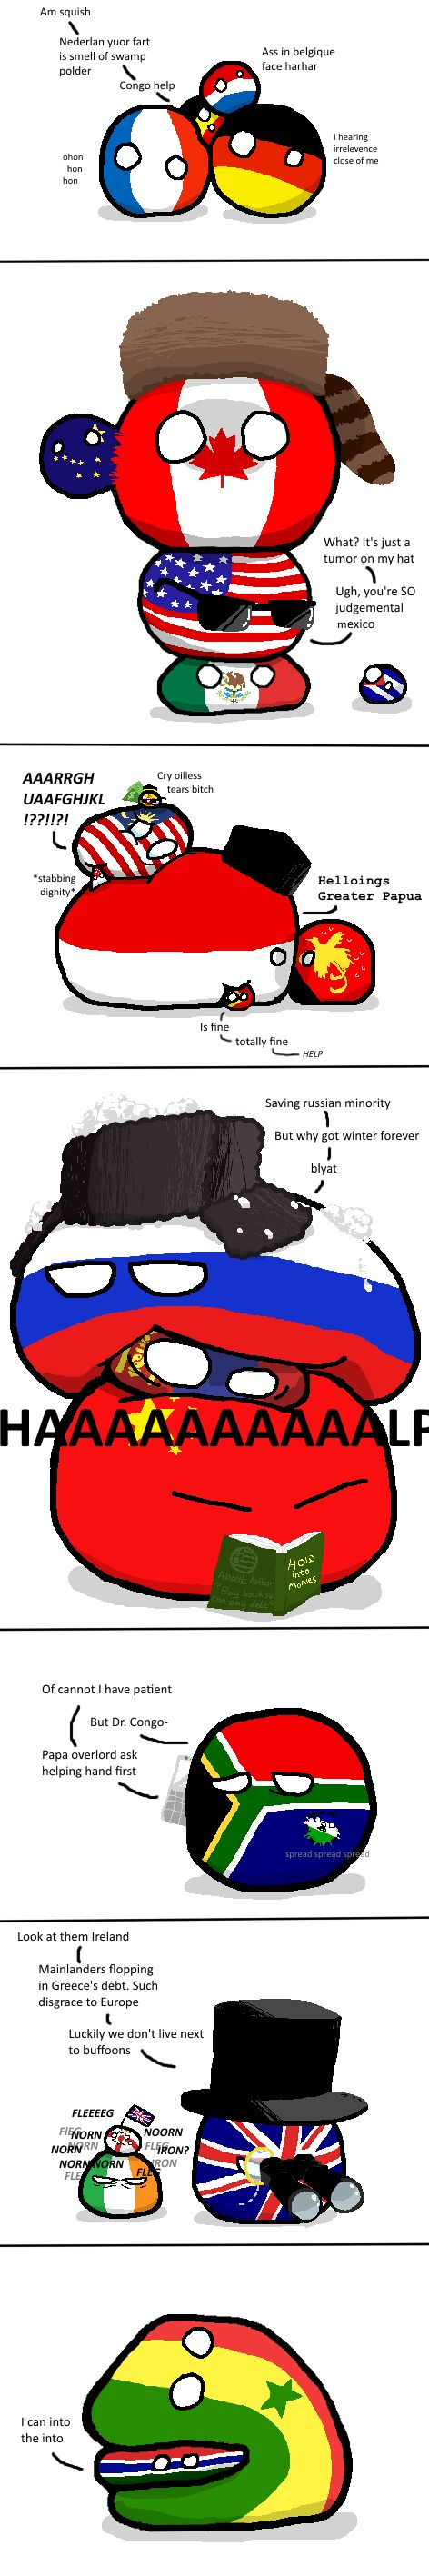 Some Mildly Interesting Geography That You Guys Won't Probably Care (France, Germany, Belgium, Netherlands, Canada, USA, Mexico, Malaysia, Singapore, Indonesia, Timor Leste, Papua New Guinea, Russia, Mongolia, China, South Africa, Lesotho, UK, Ireland, Senegal, Gambia) by kablamode  #polandball #countryball